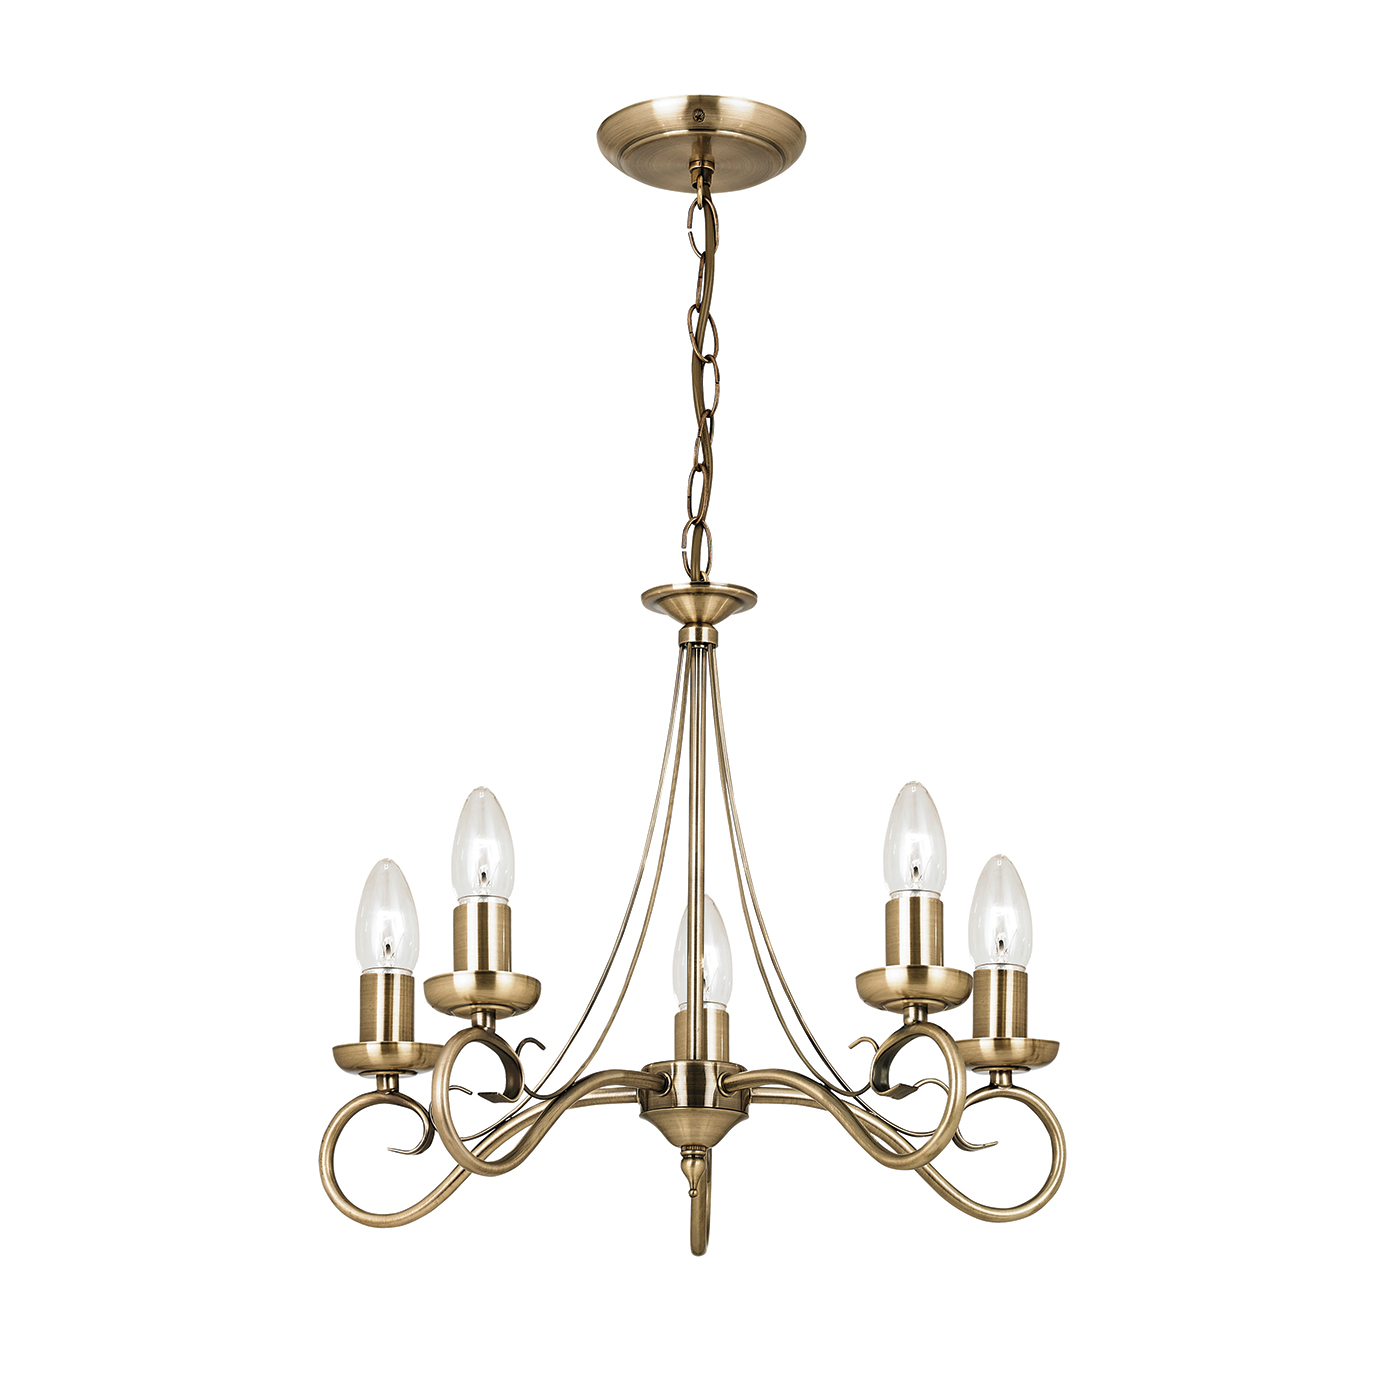 Endon Trafford chandelier 5x 60W Antique brass effect plate